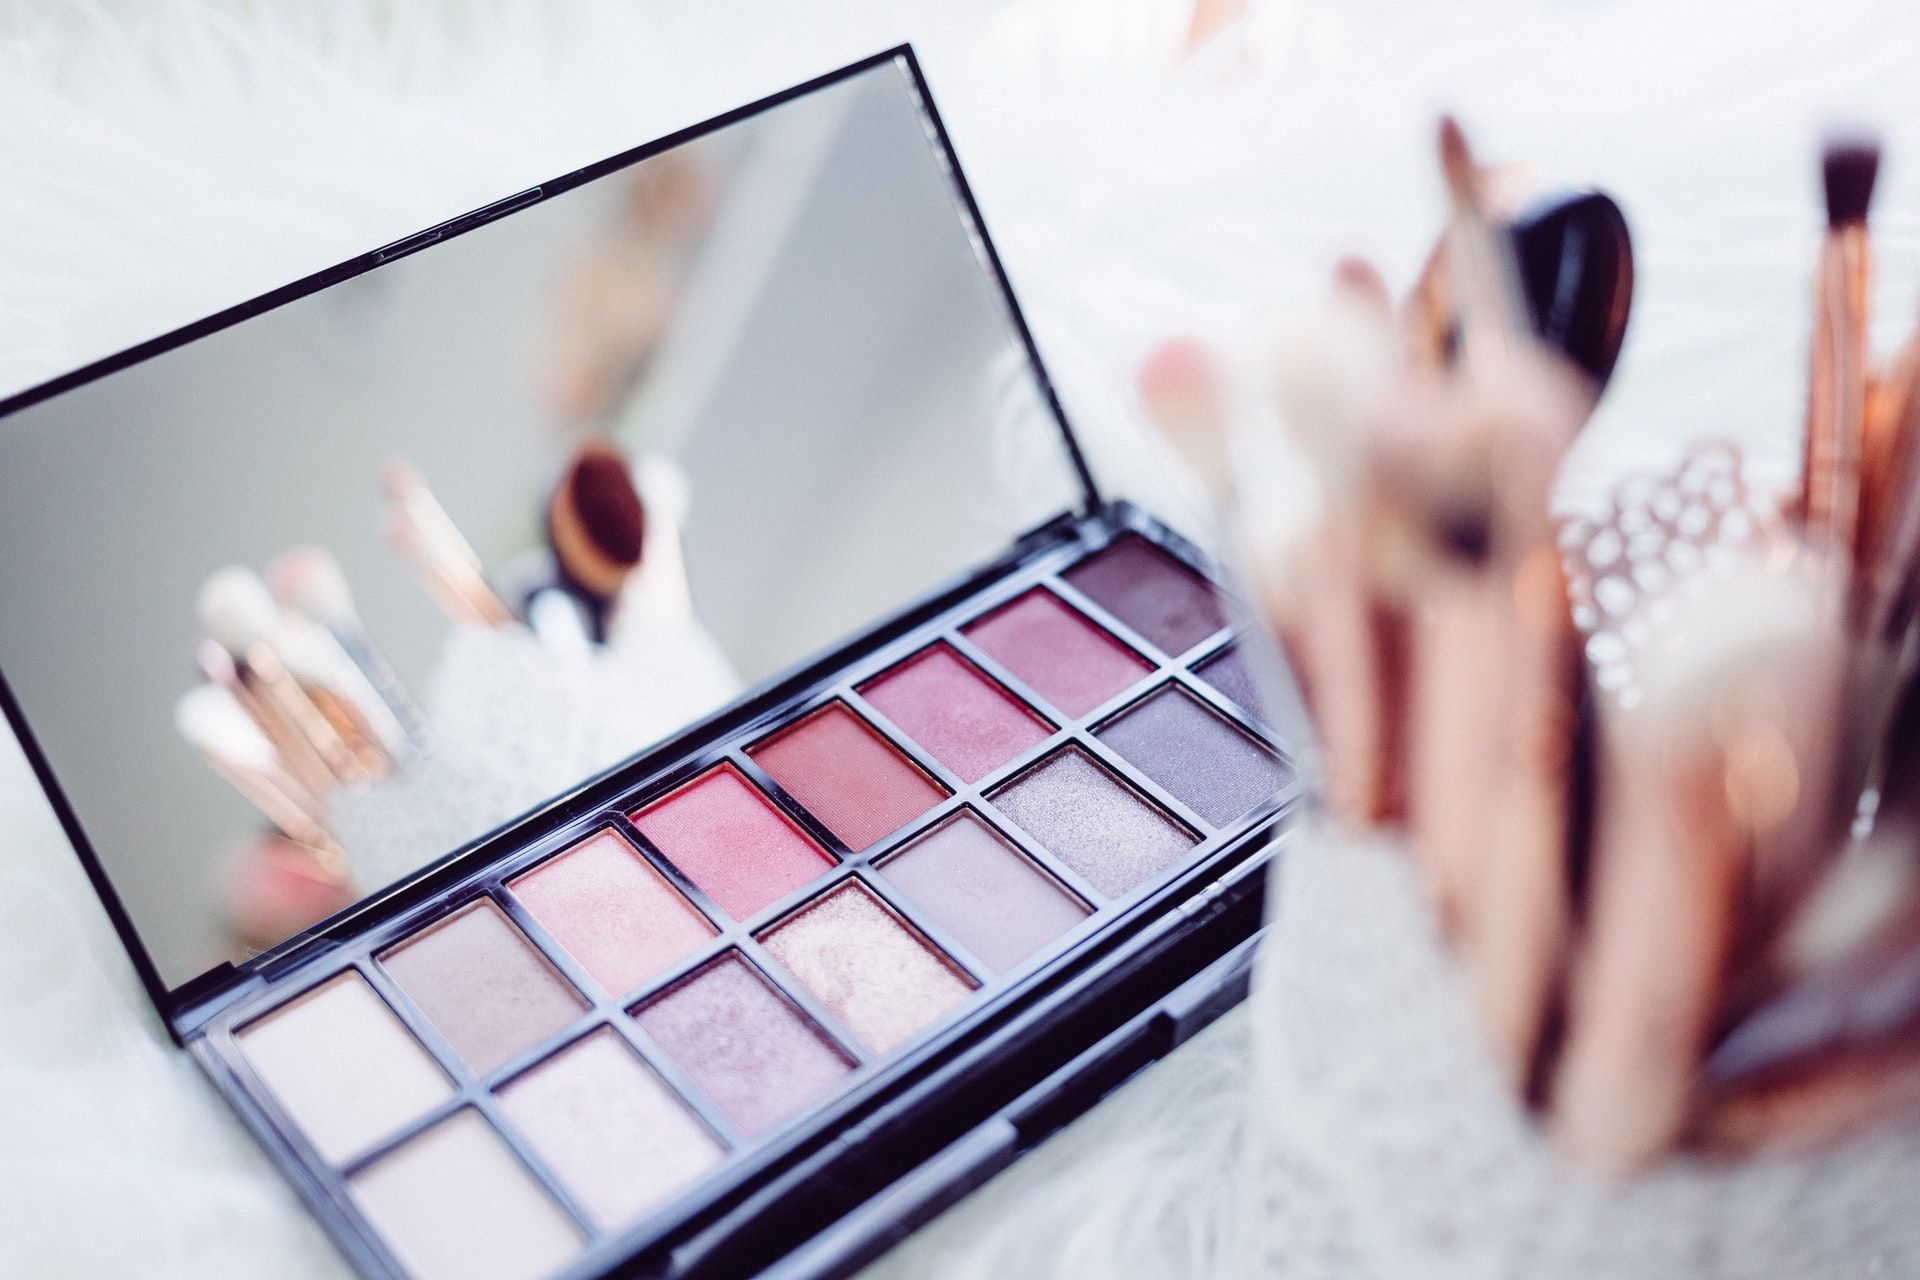 13 Makeup Facts That May Surprise You